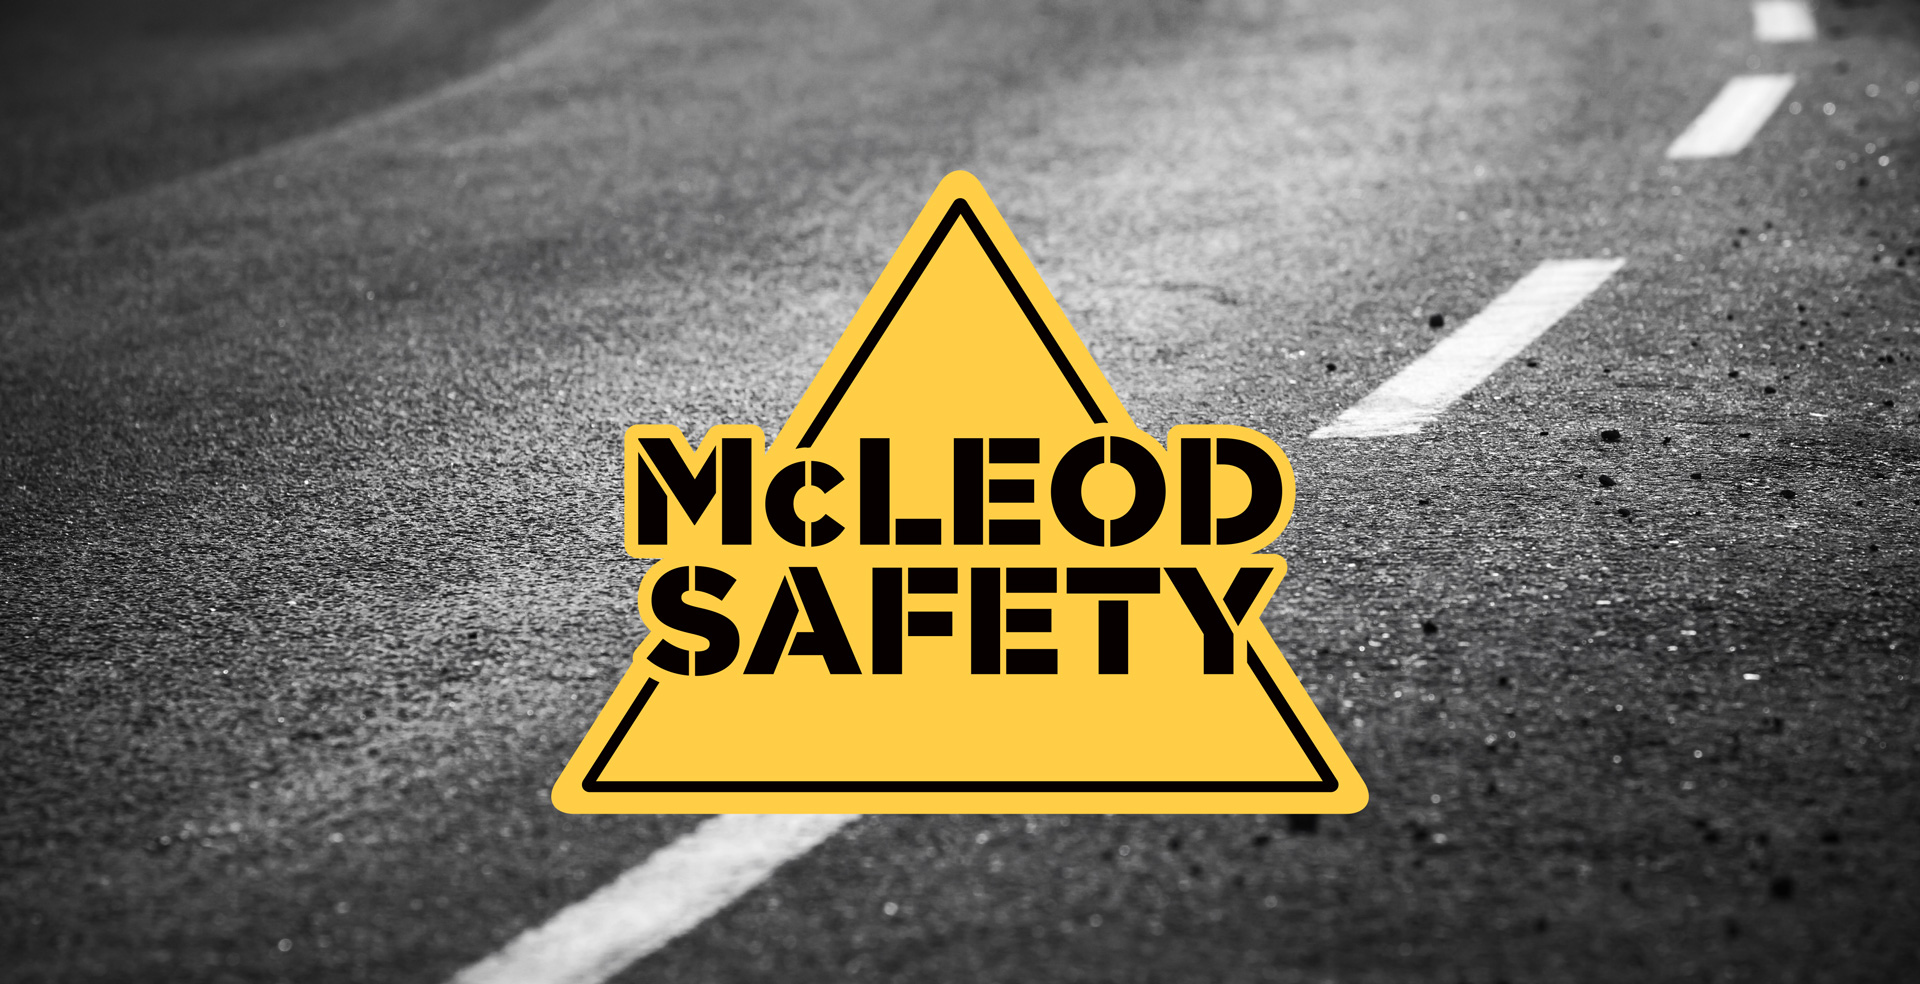 McLeod Safety logo large